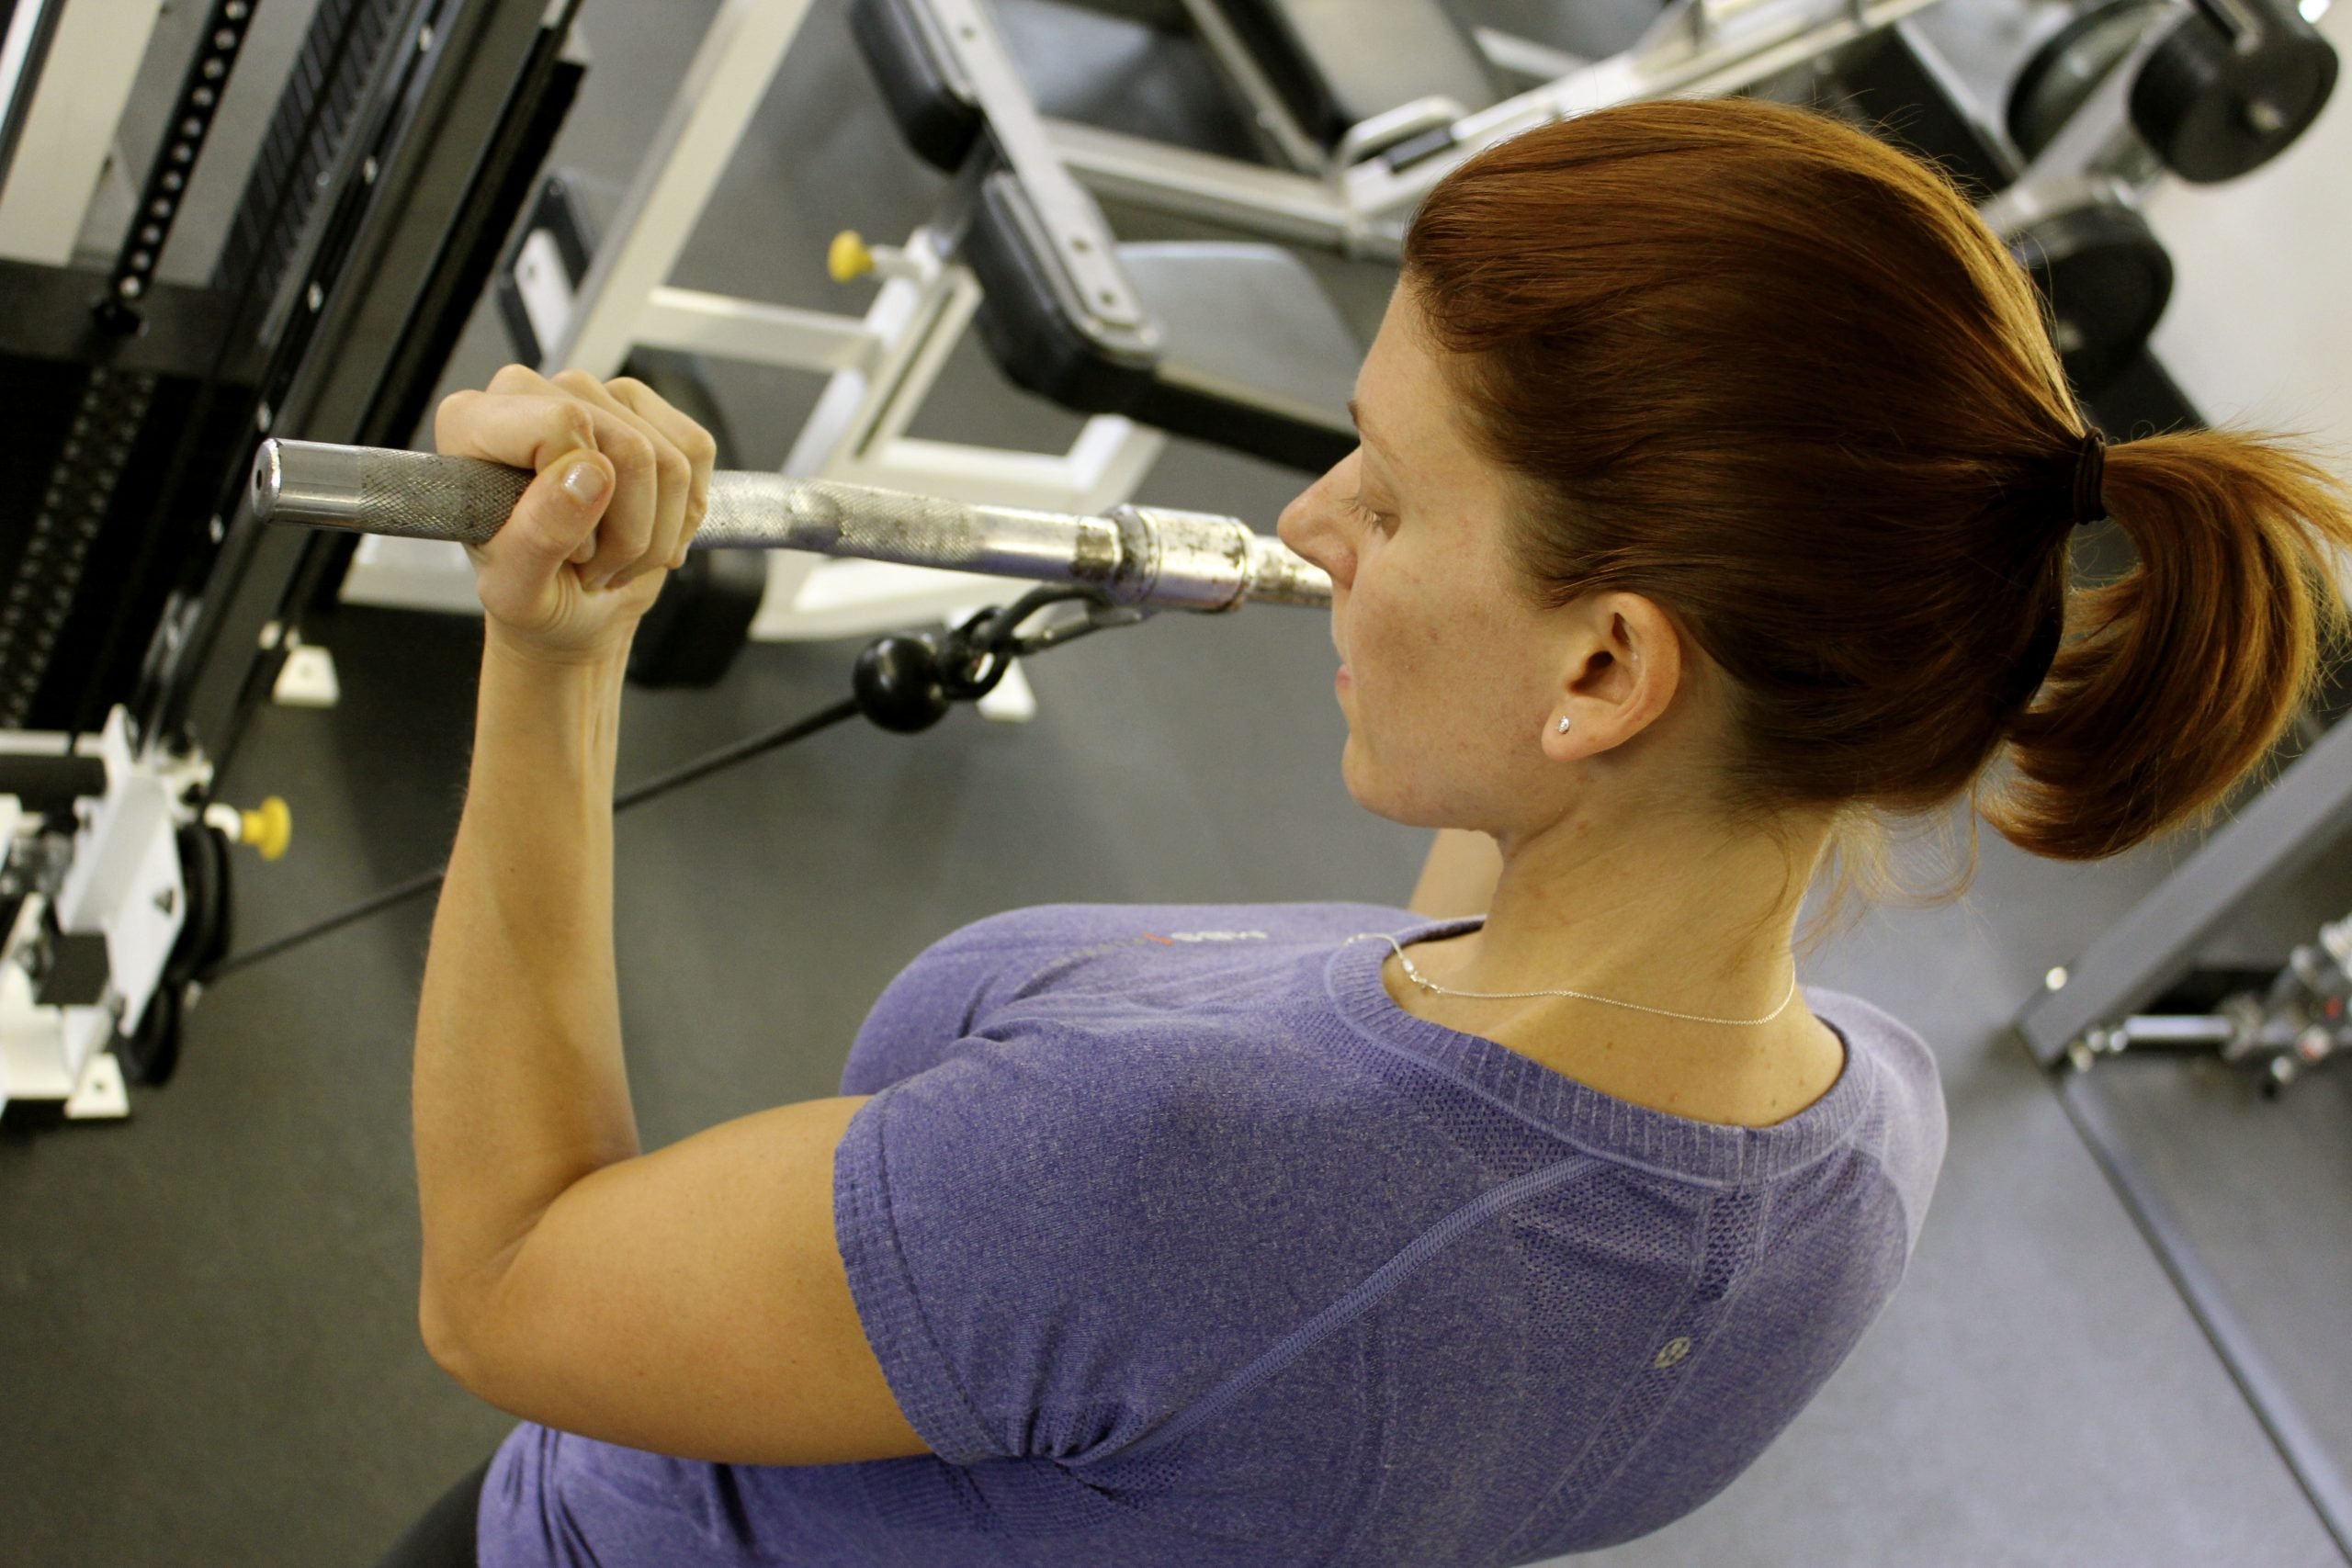 Amanda Avey works out at the gym. Strong arms. Photo by Tom Trevino.